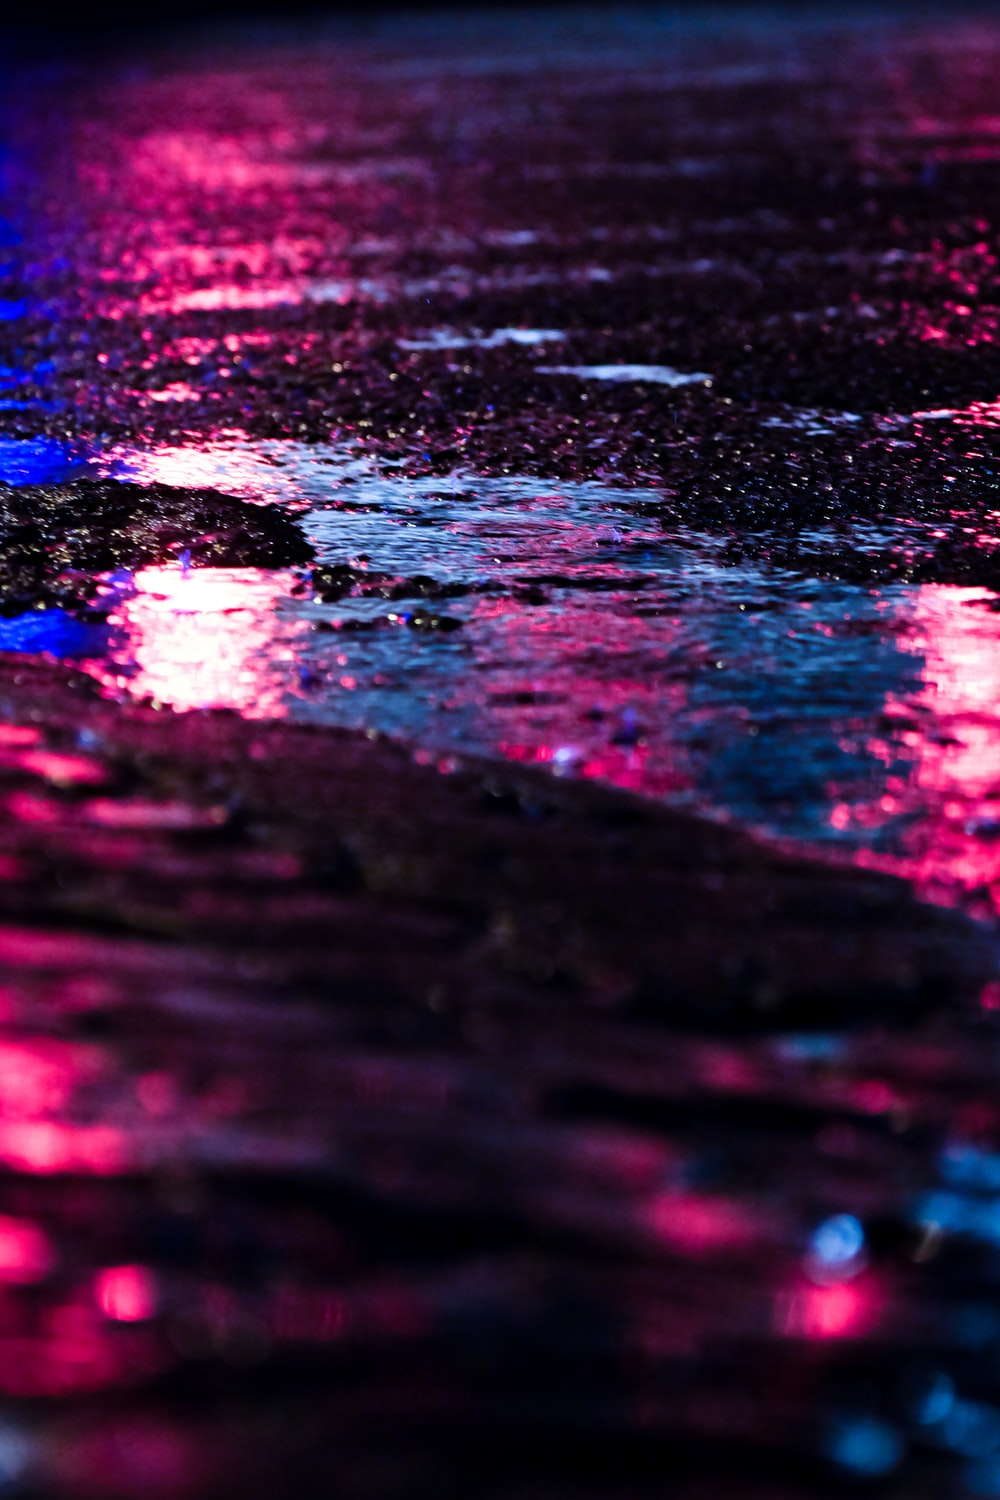 pink and blue lights reflect on the road